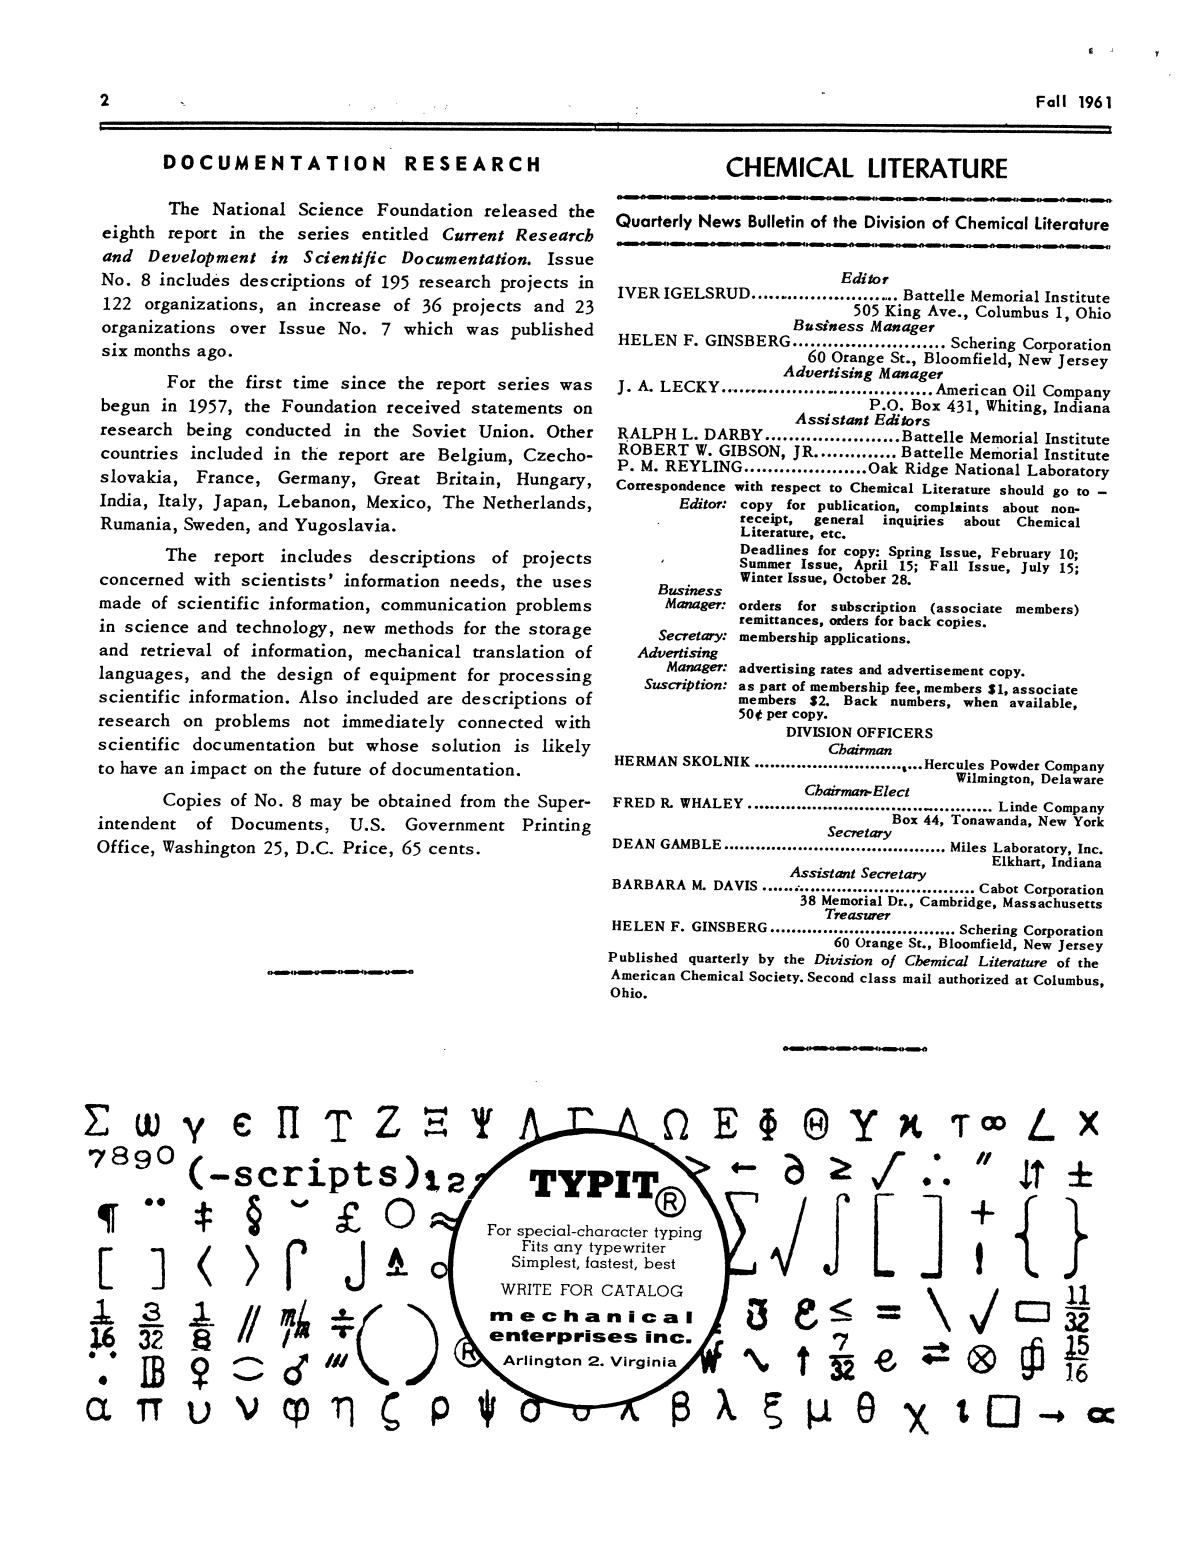 Chemical Literature, Volume 13, Number 3, Fall 1961                                                                                                      2